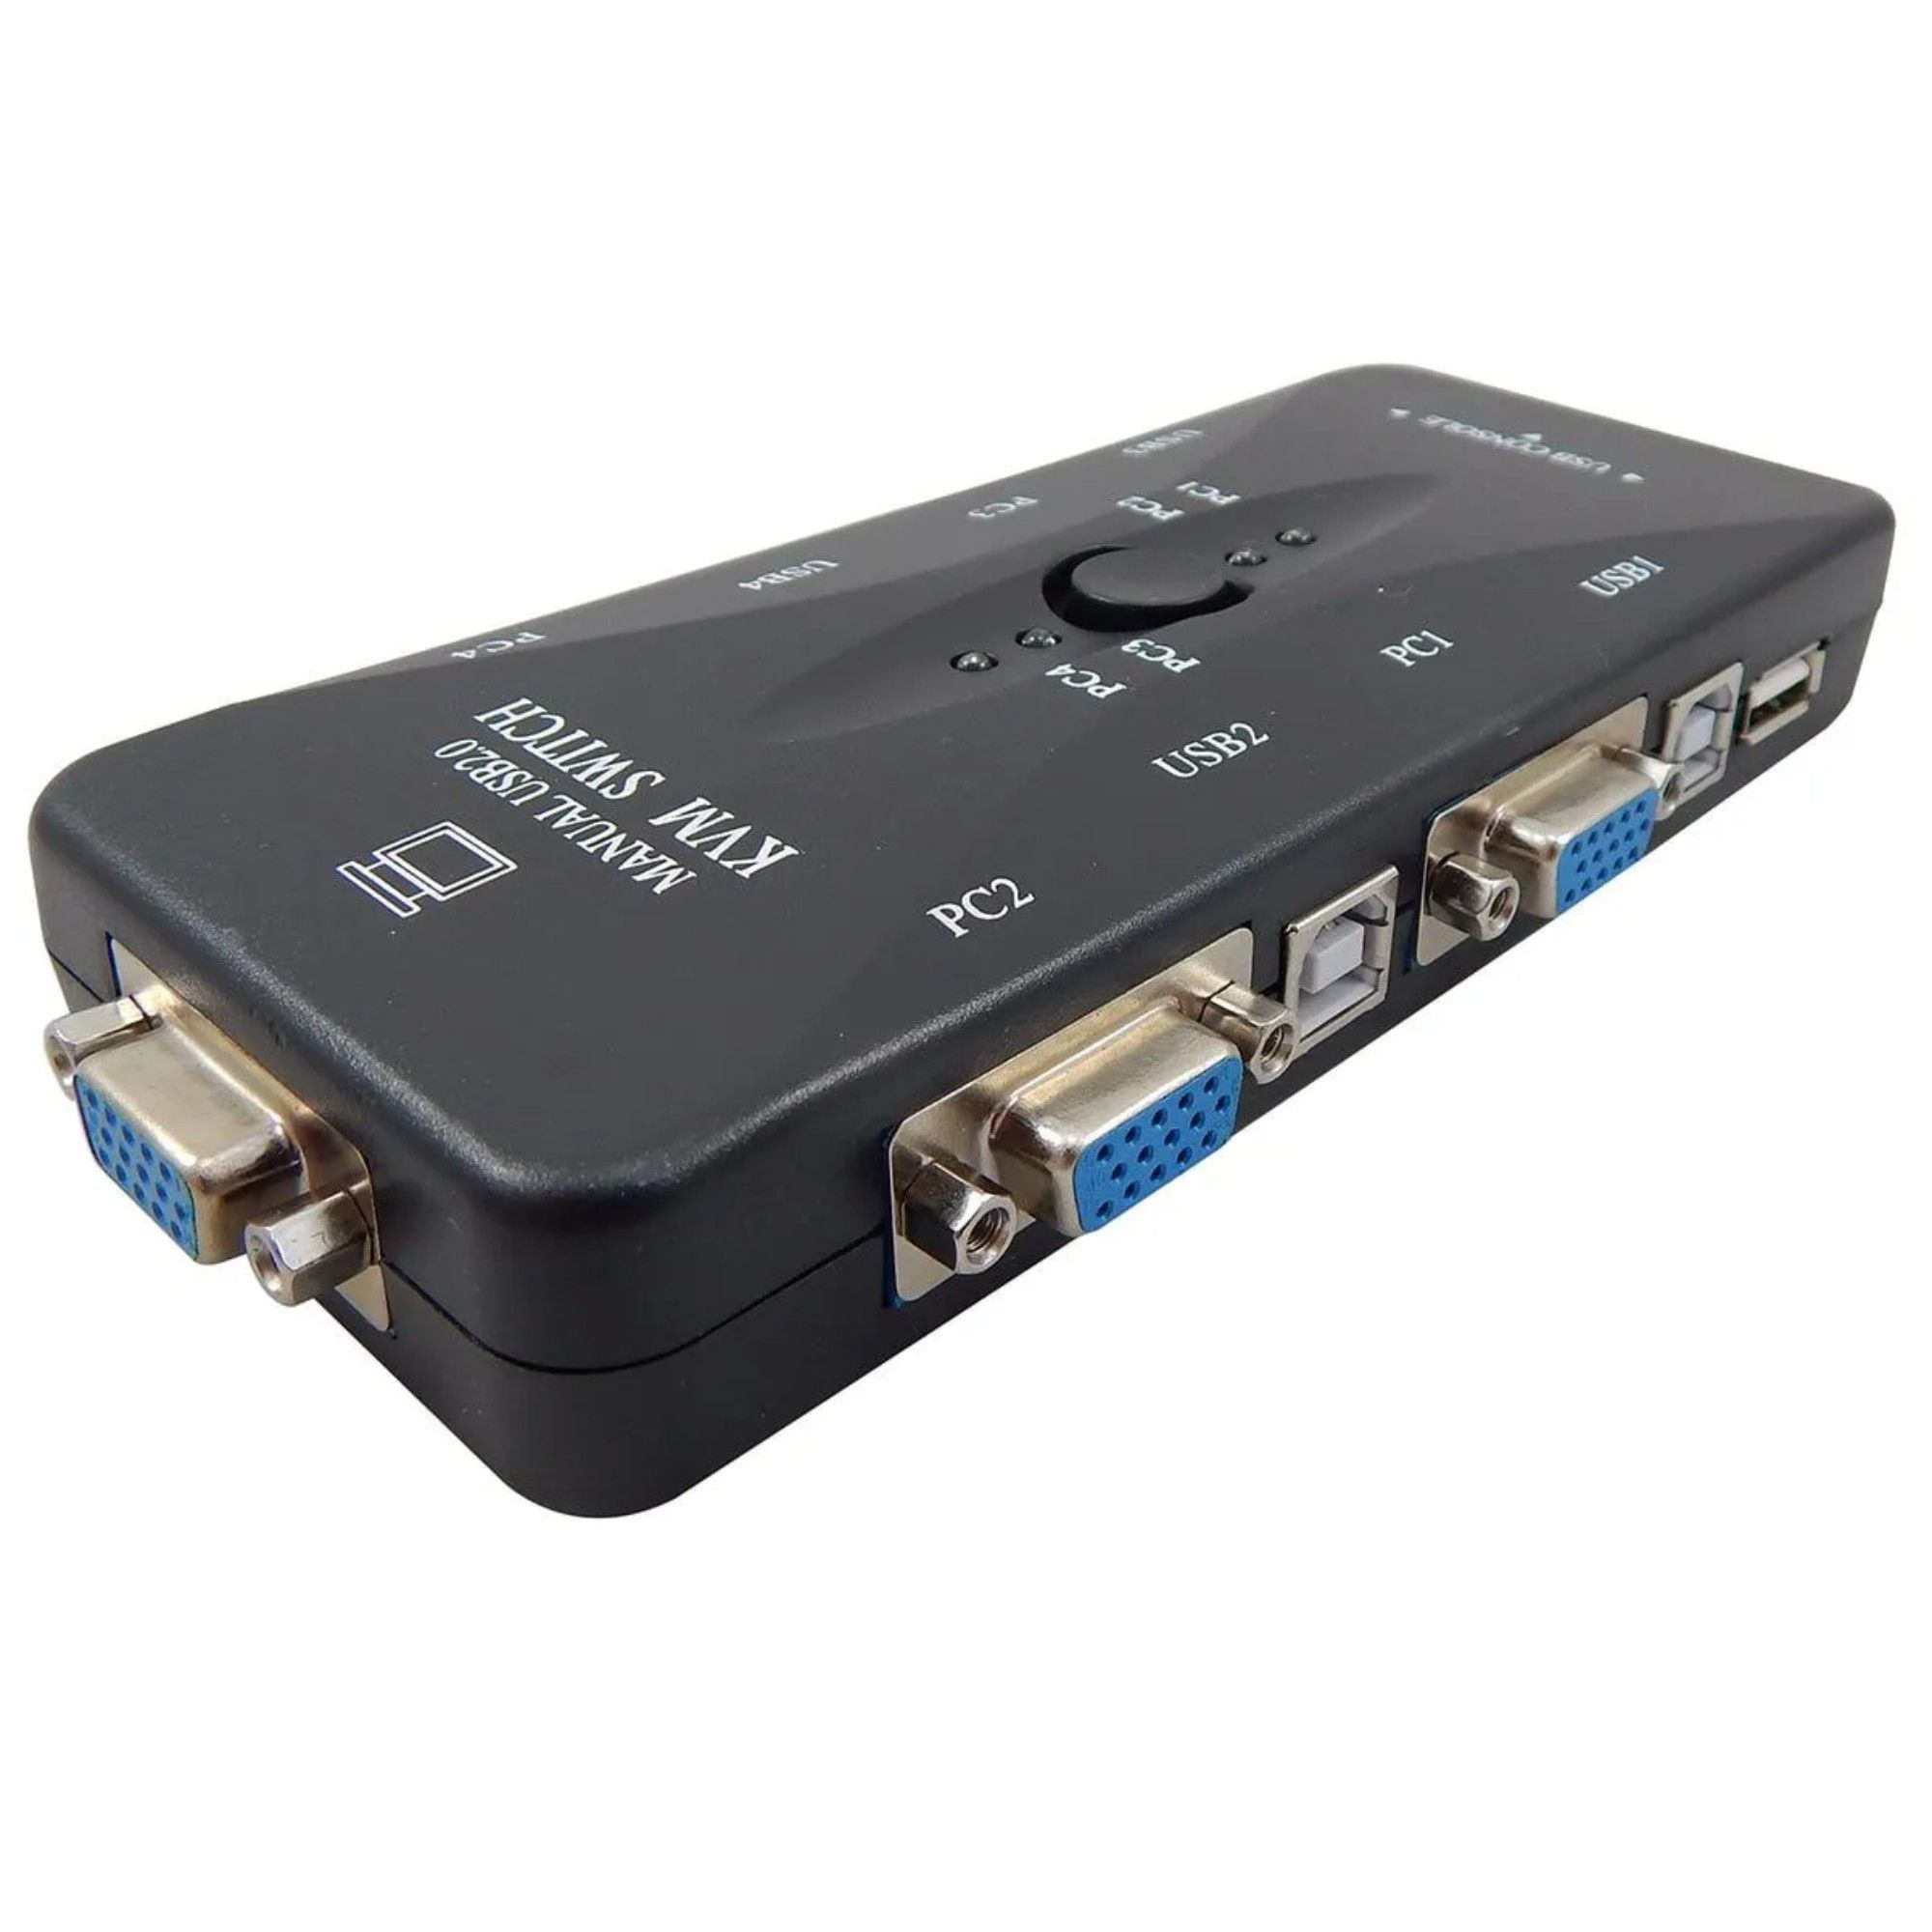 Chaveador Kvm Usb Switch 4 Portas Vga